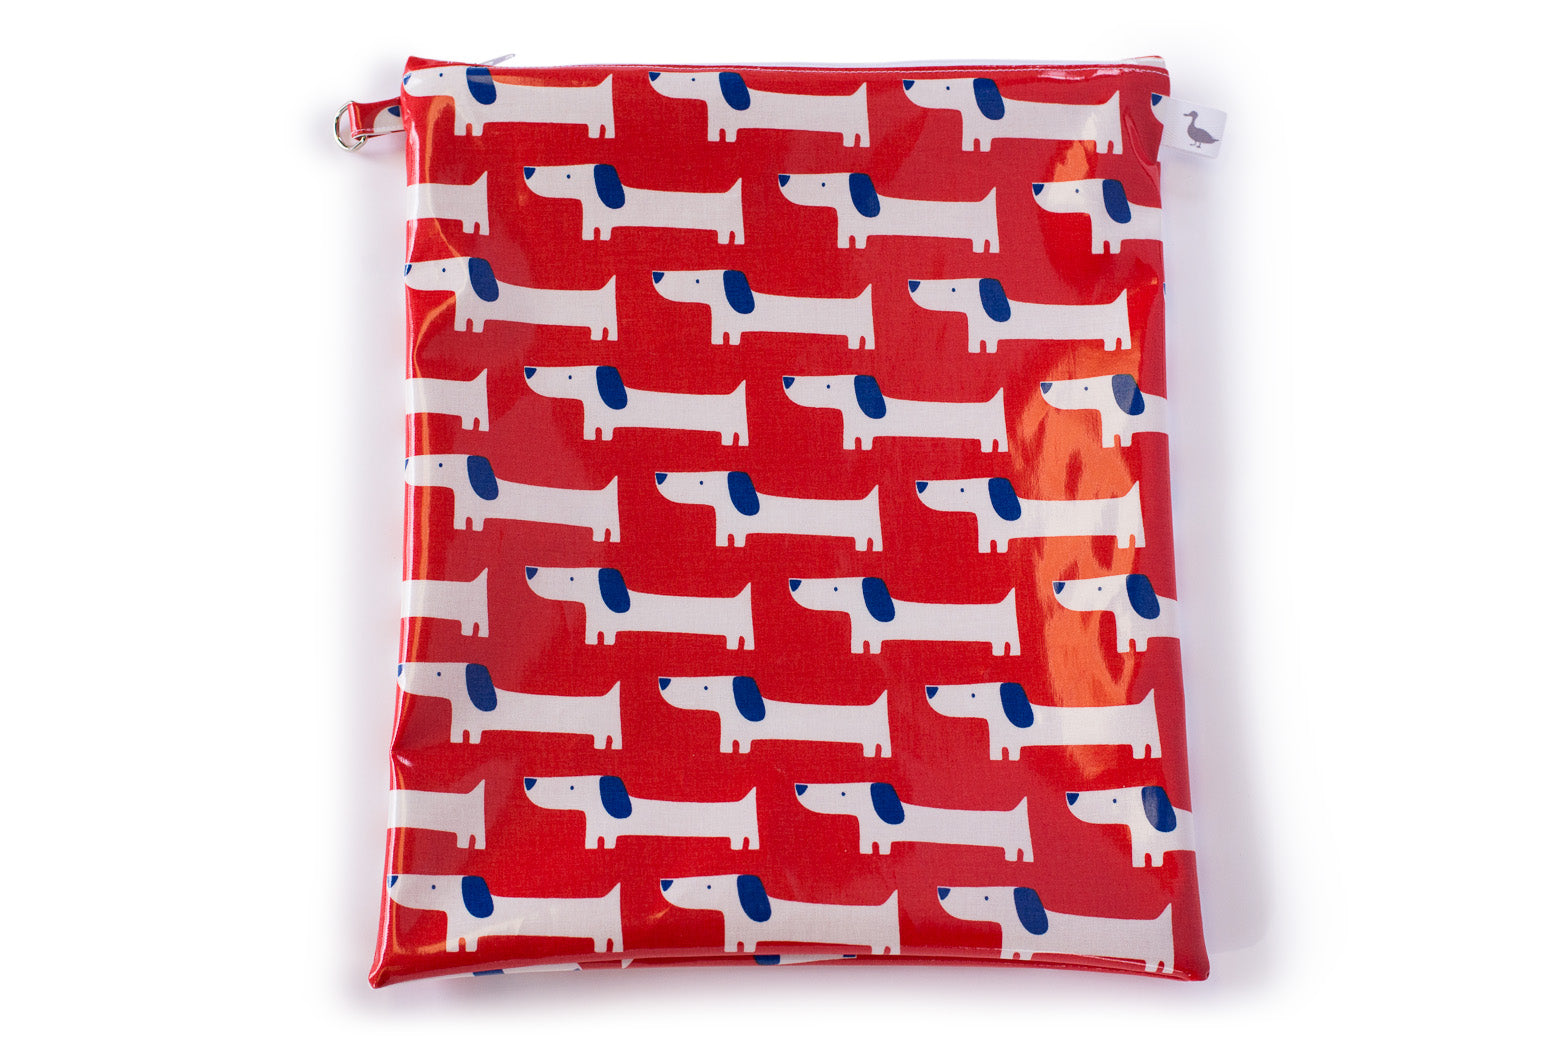 Large Zippered Bag - Red Fabric with white and blue dogs